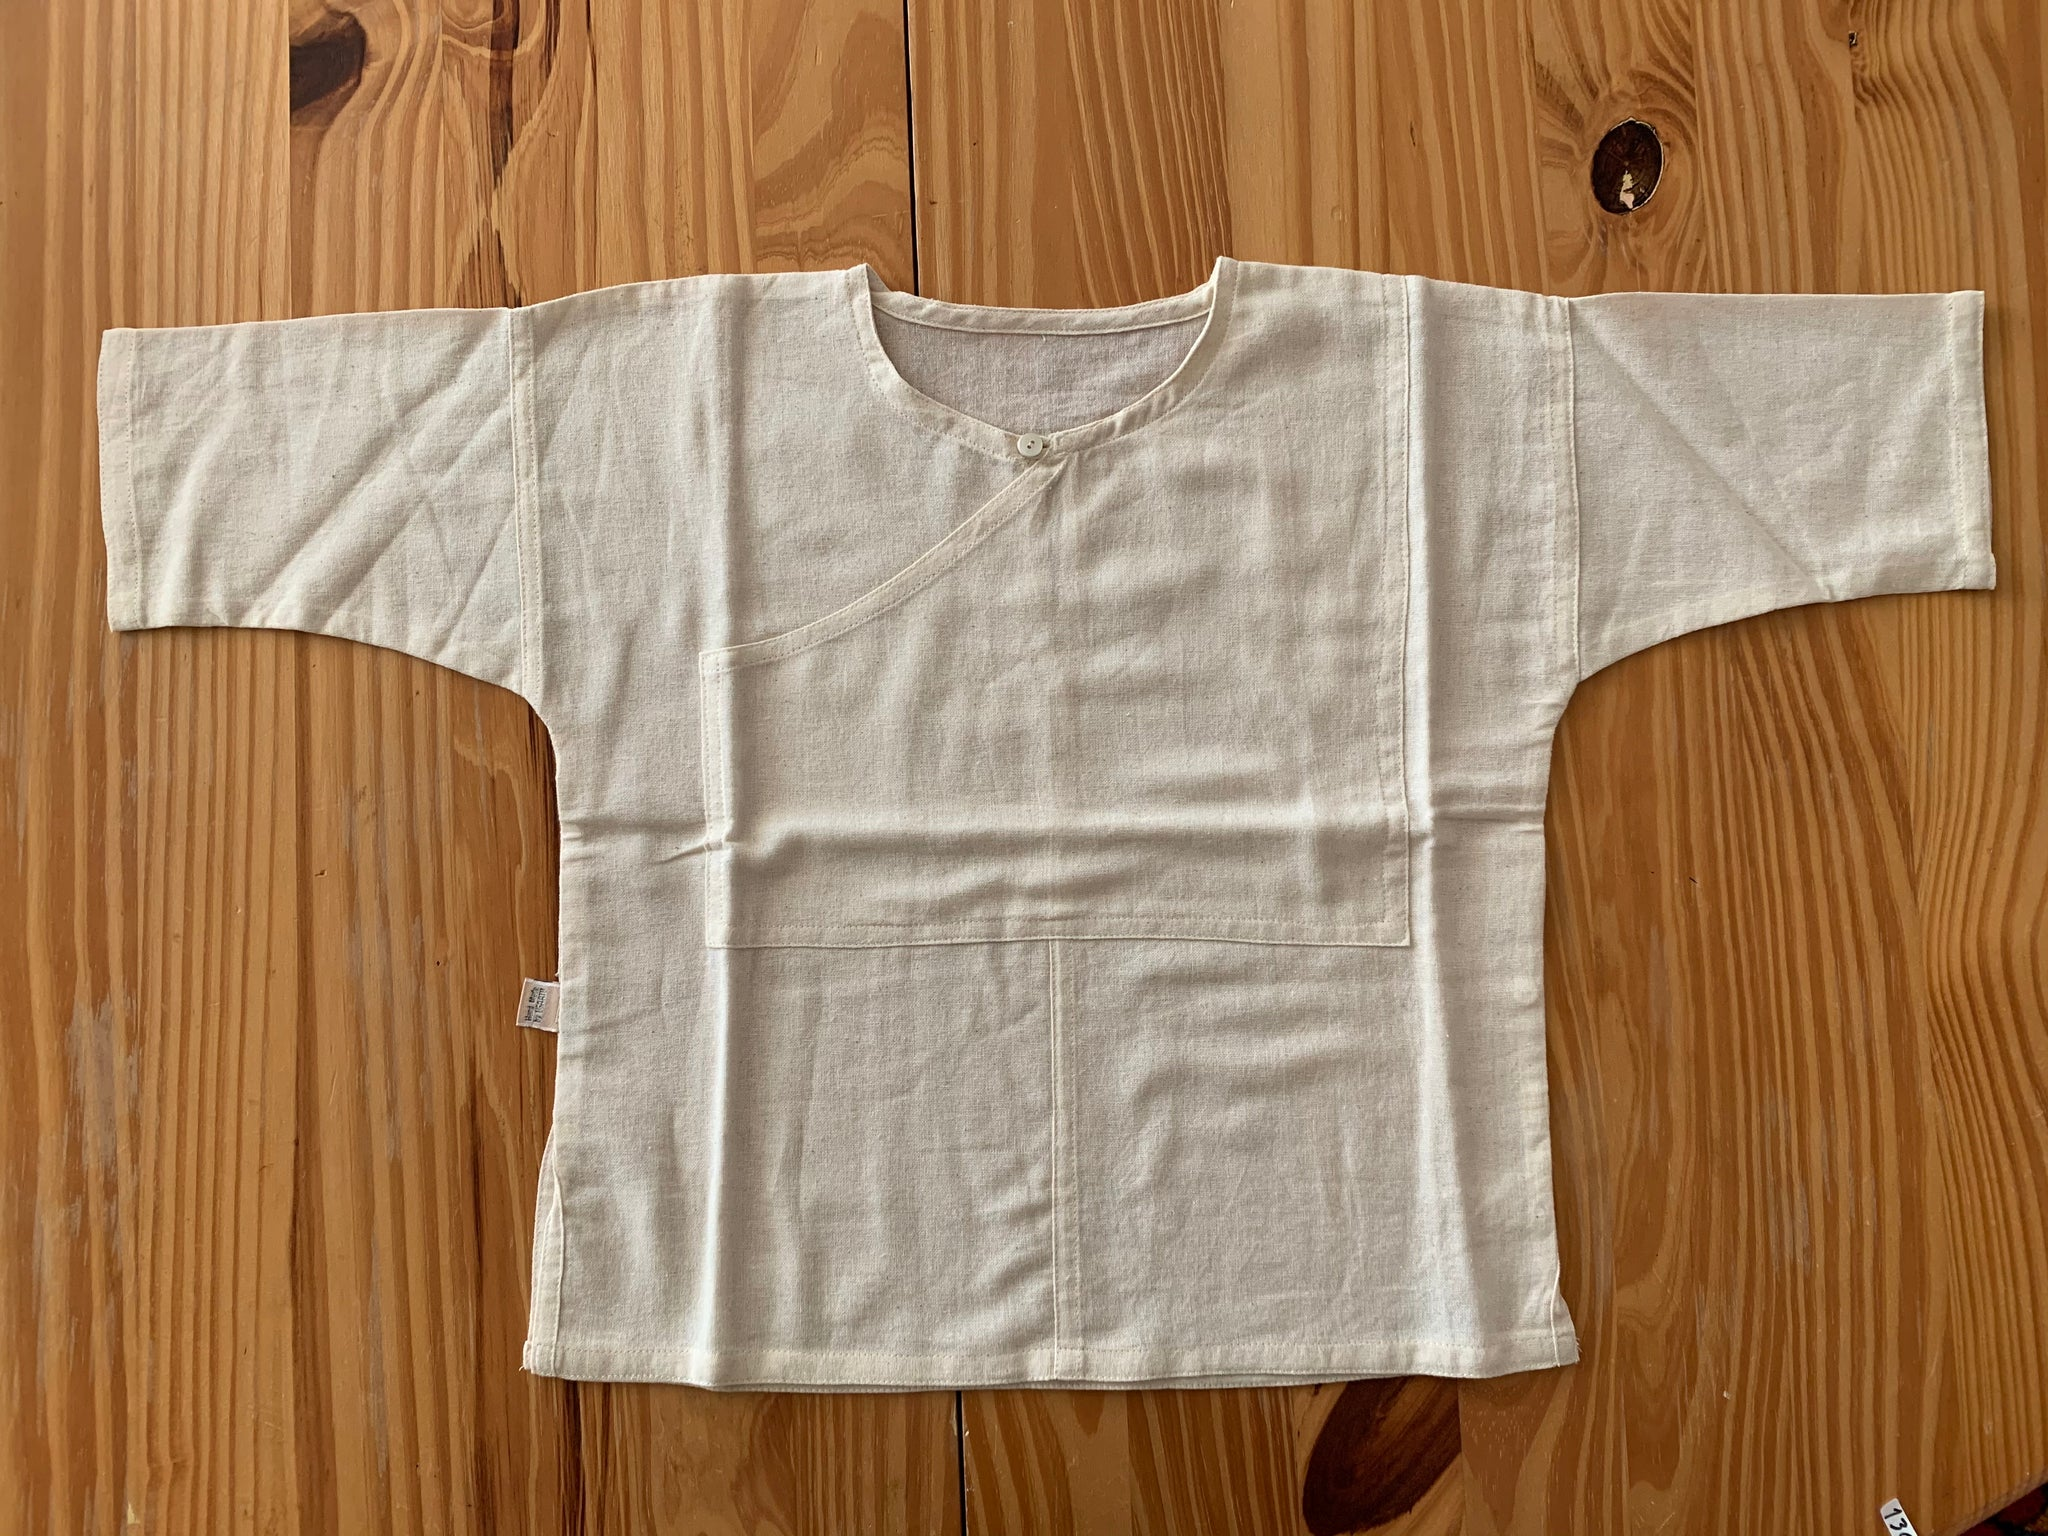 Round-Neck Inner Shirt For Kids 9501B - Natural White